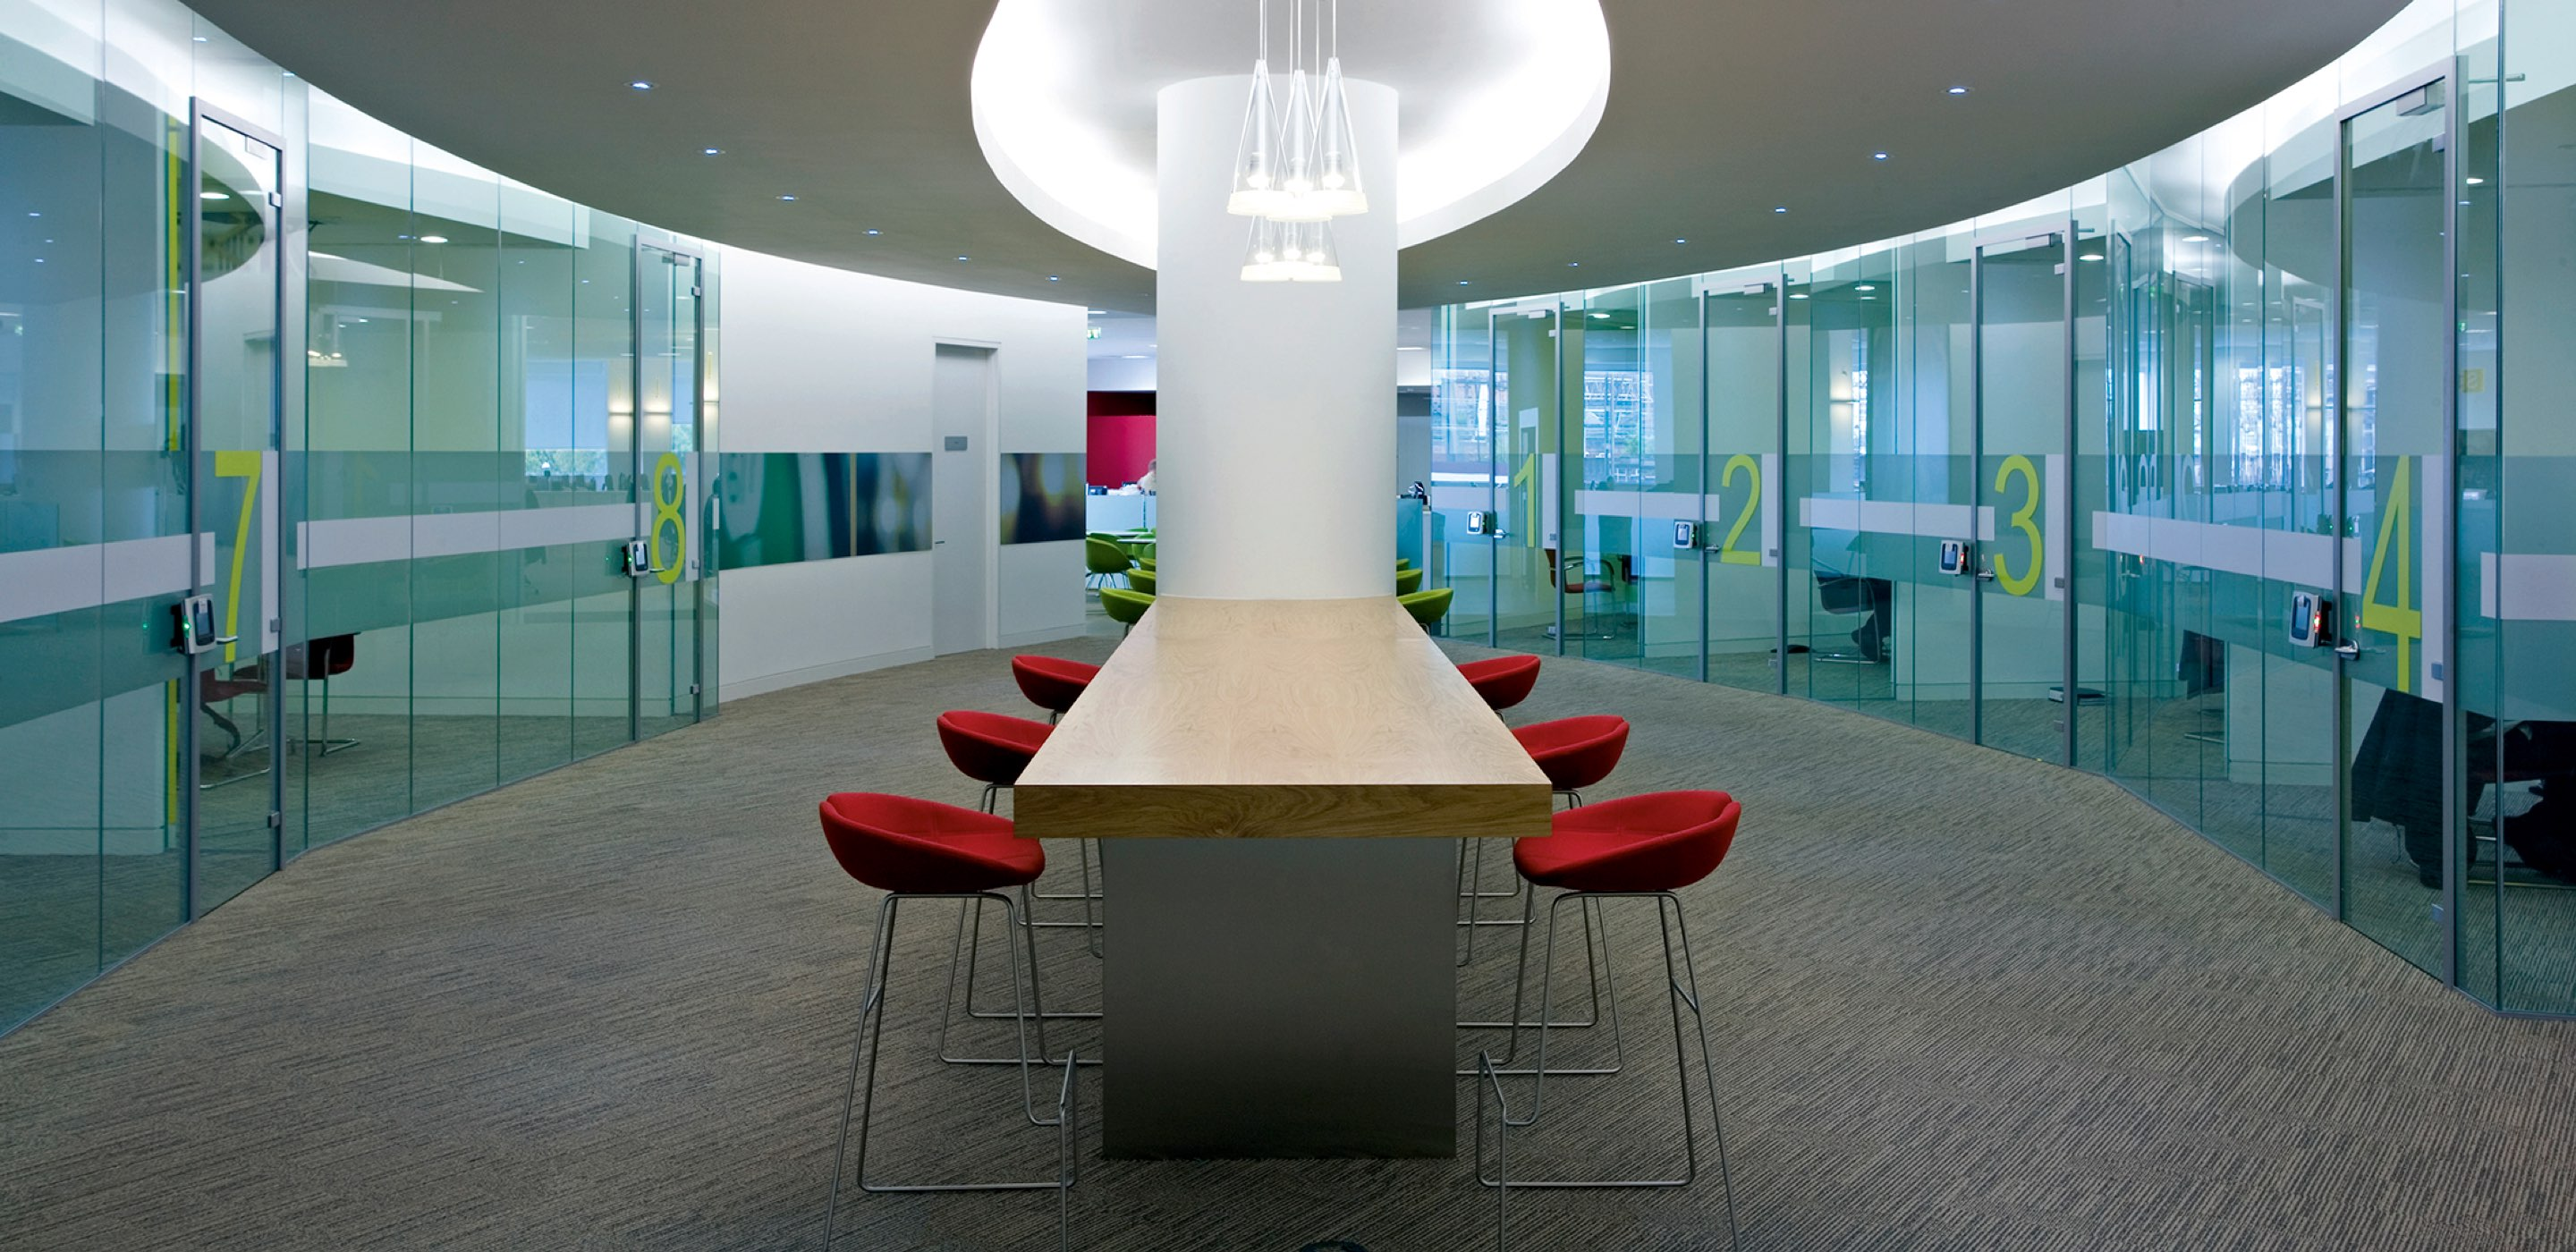 Corporate Interiors Design and Build - Modern meeting space with glass partitions